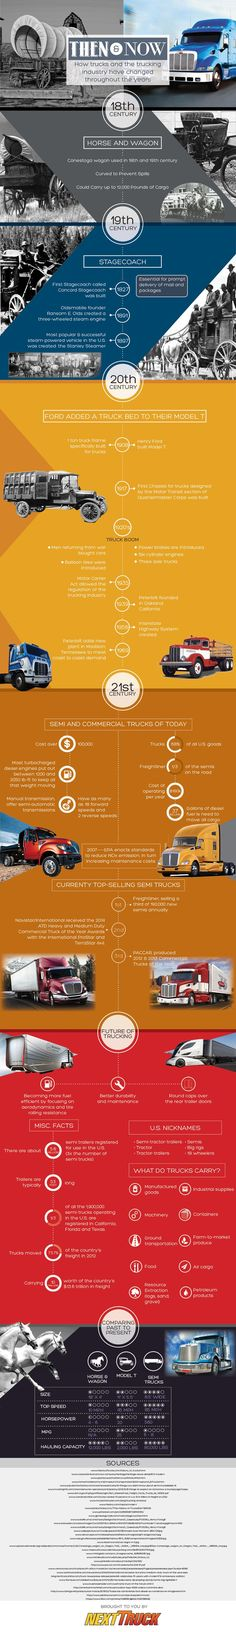 How Trucks and the Trucking Industry Have Changed   #Trucks #History #Transportation #infographic